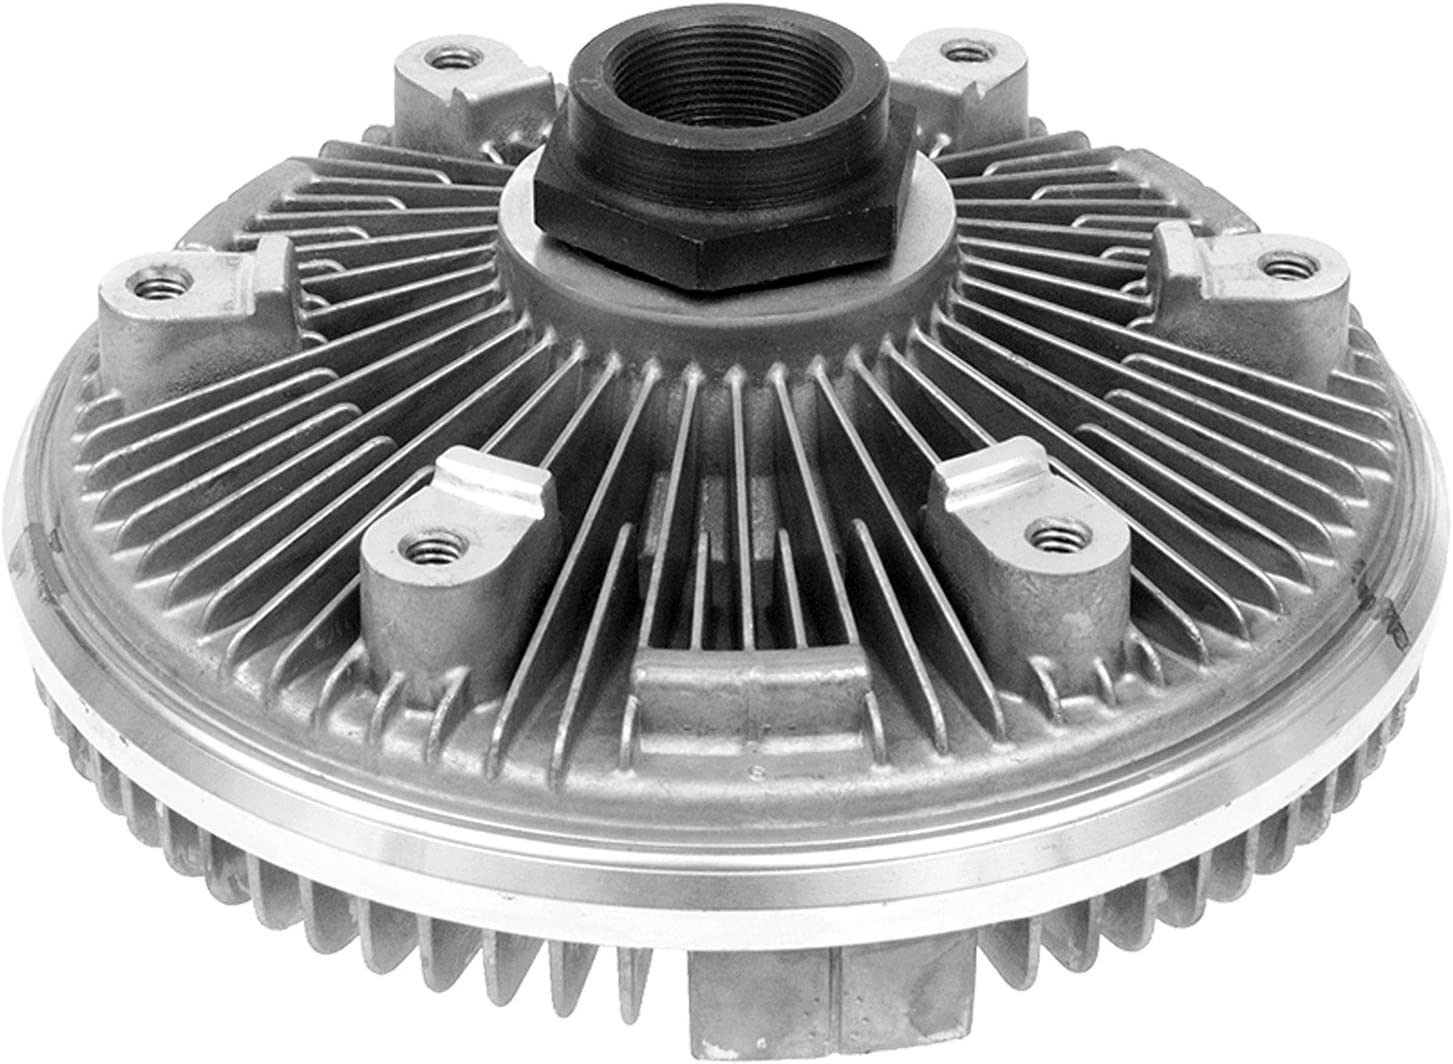 Hayden Automotive 2835 Premium Fan Clutch